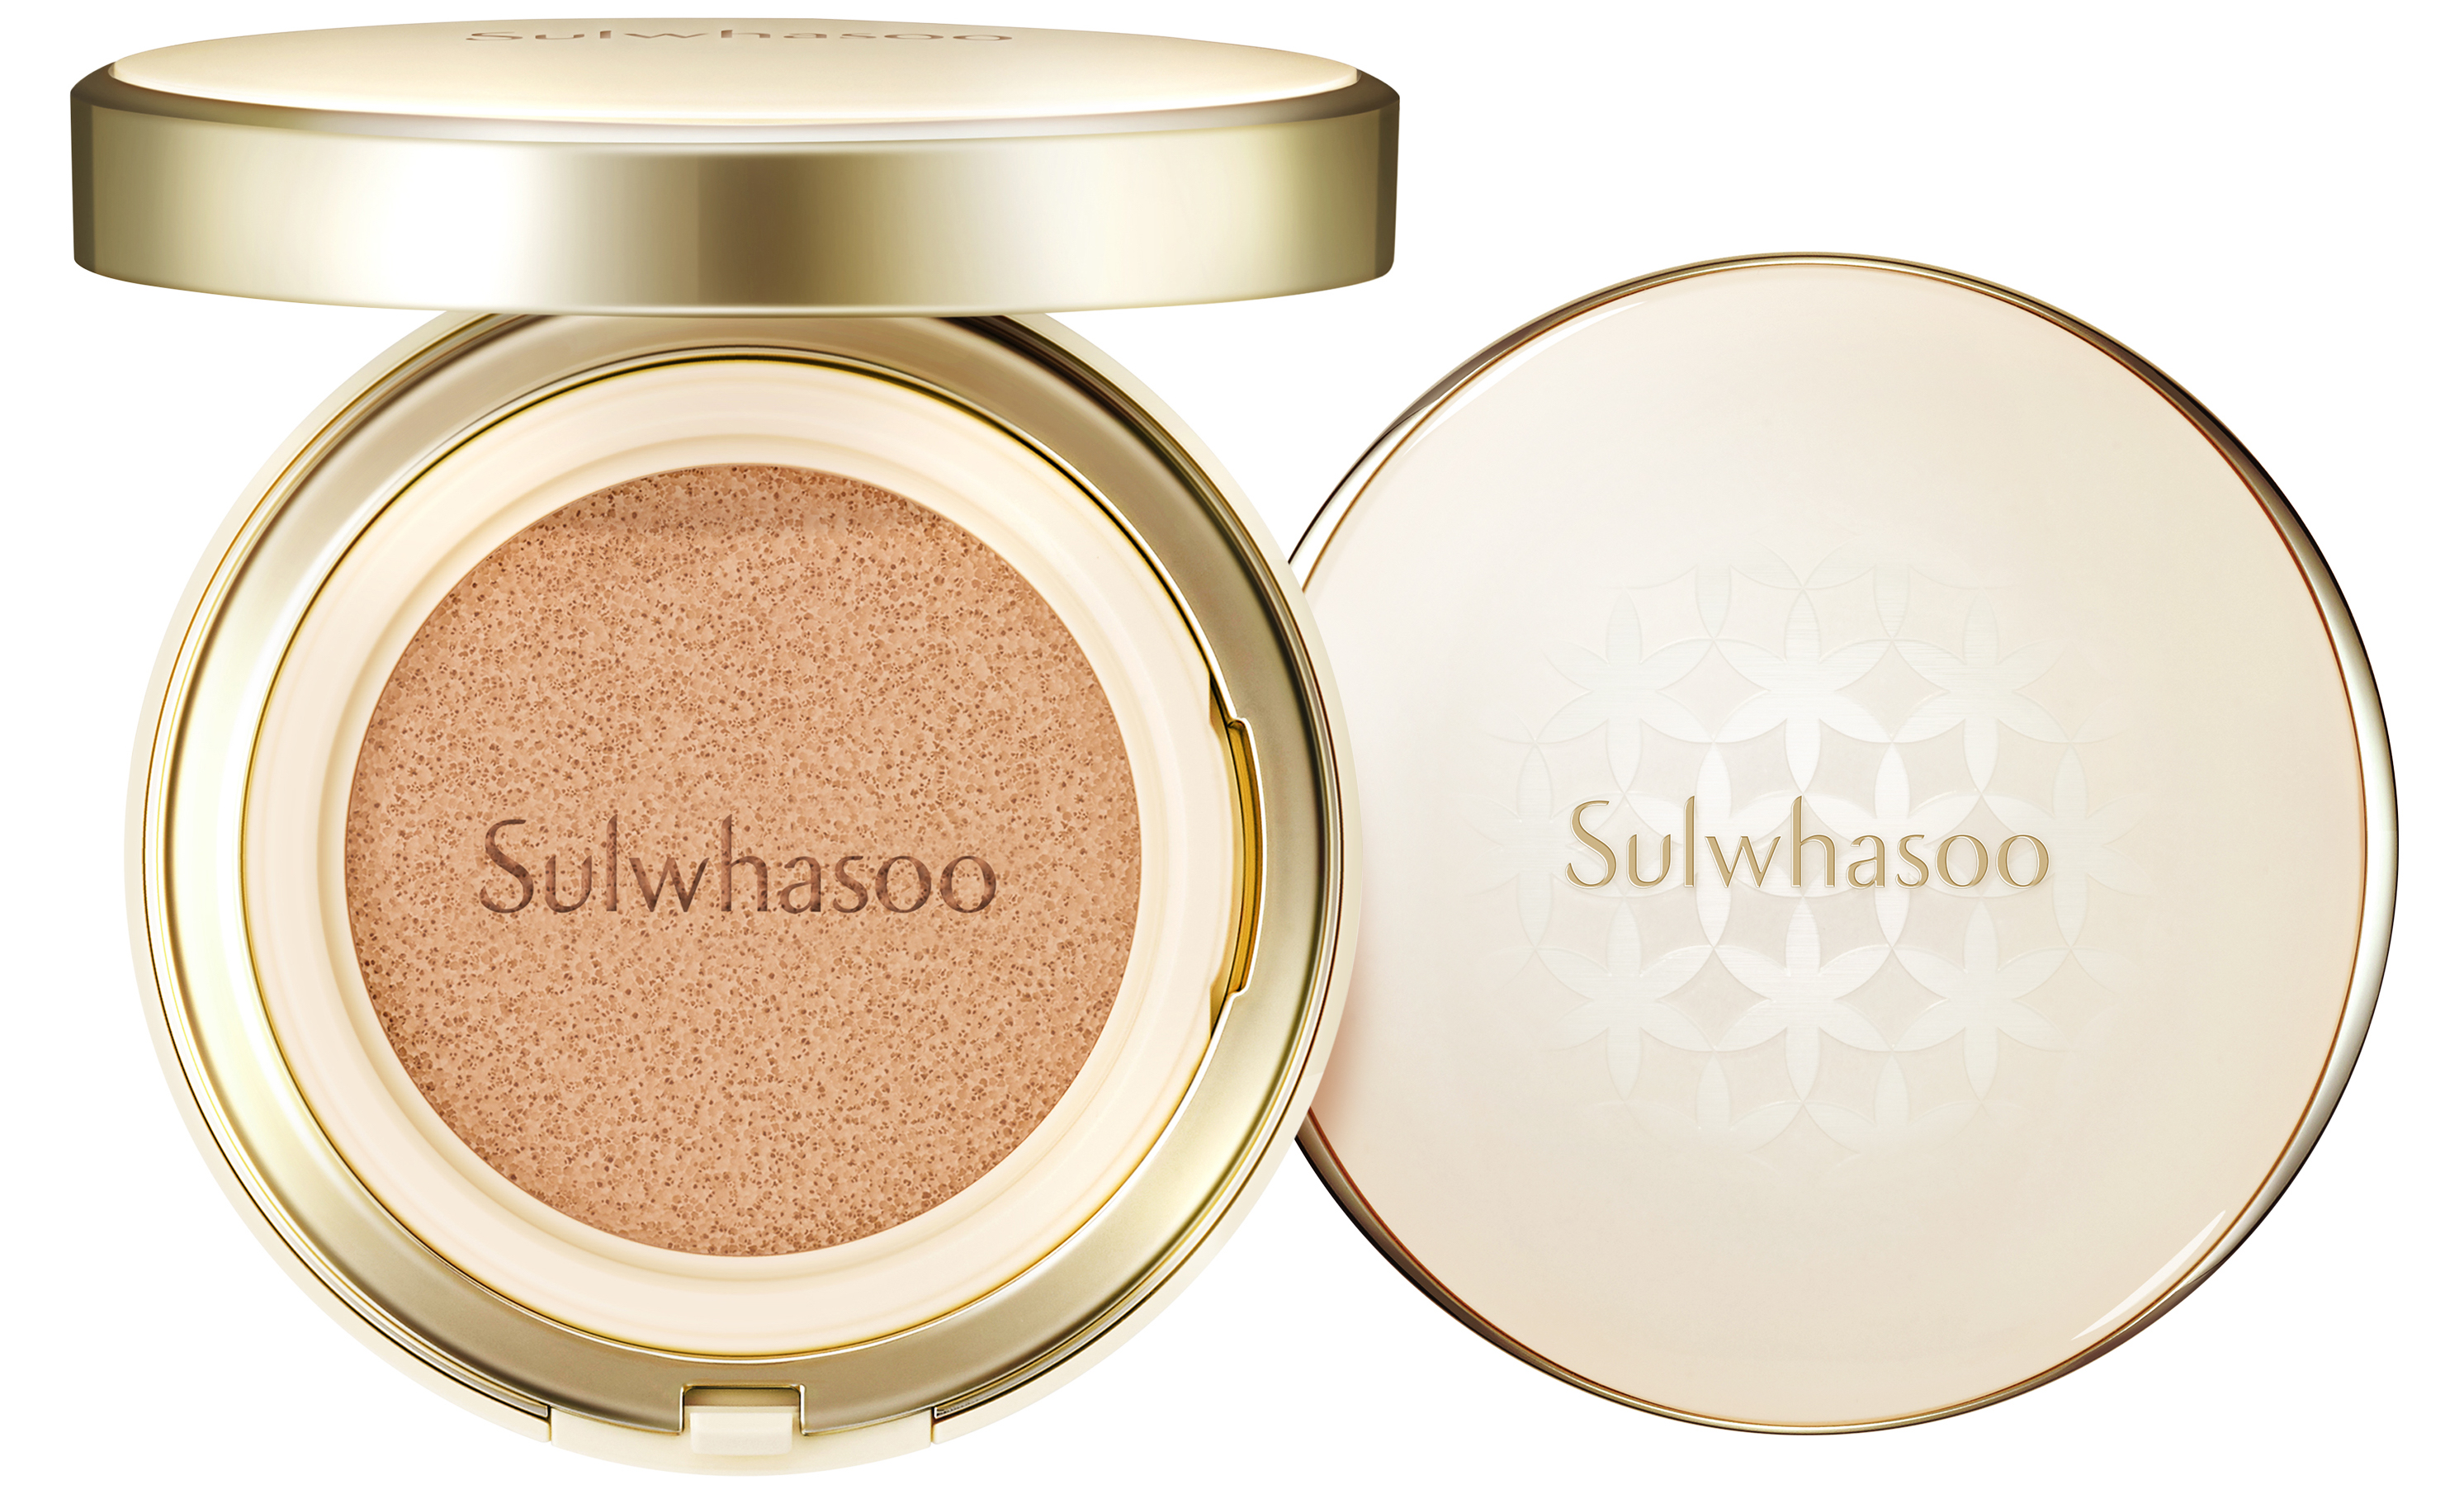 Sulwhasoo_Perfecting_Cushion AD_Open 2_Front_170515_DF